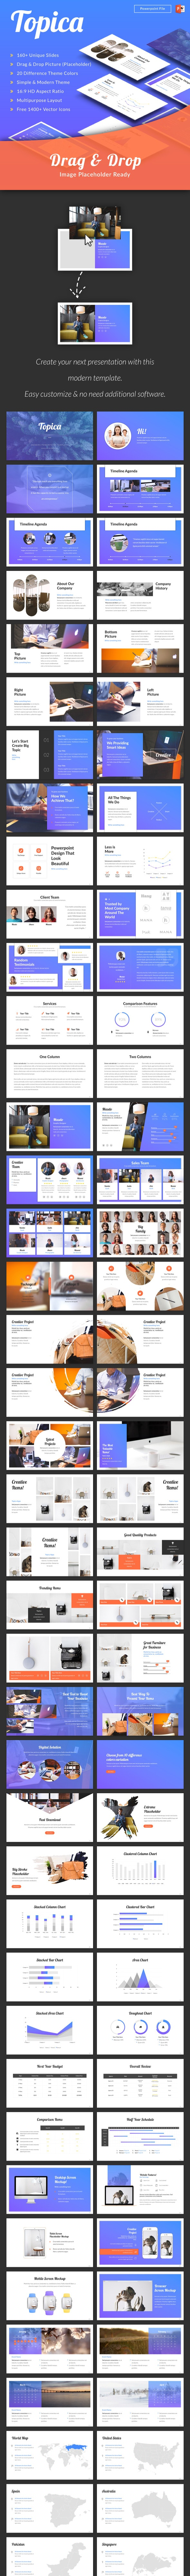 Topica Modern Powerpoint Template - PowerPoint Templates Presentation Templates